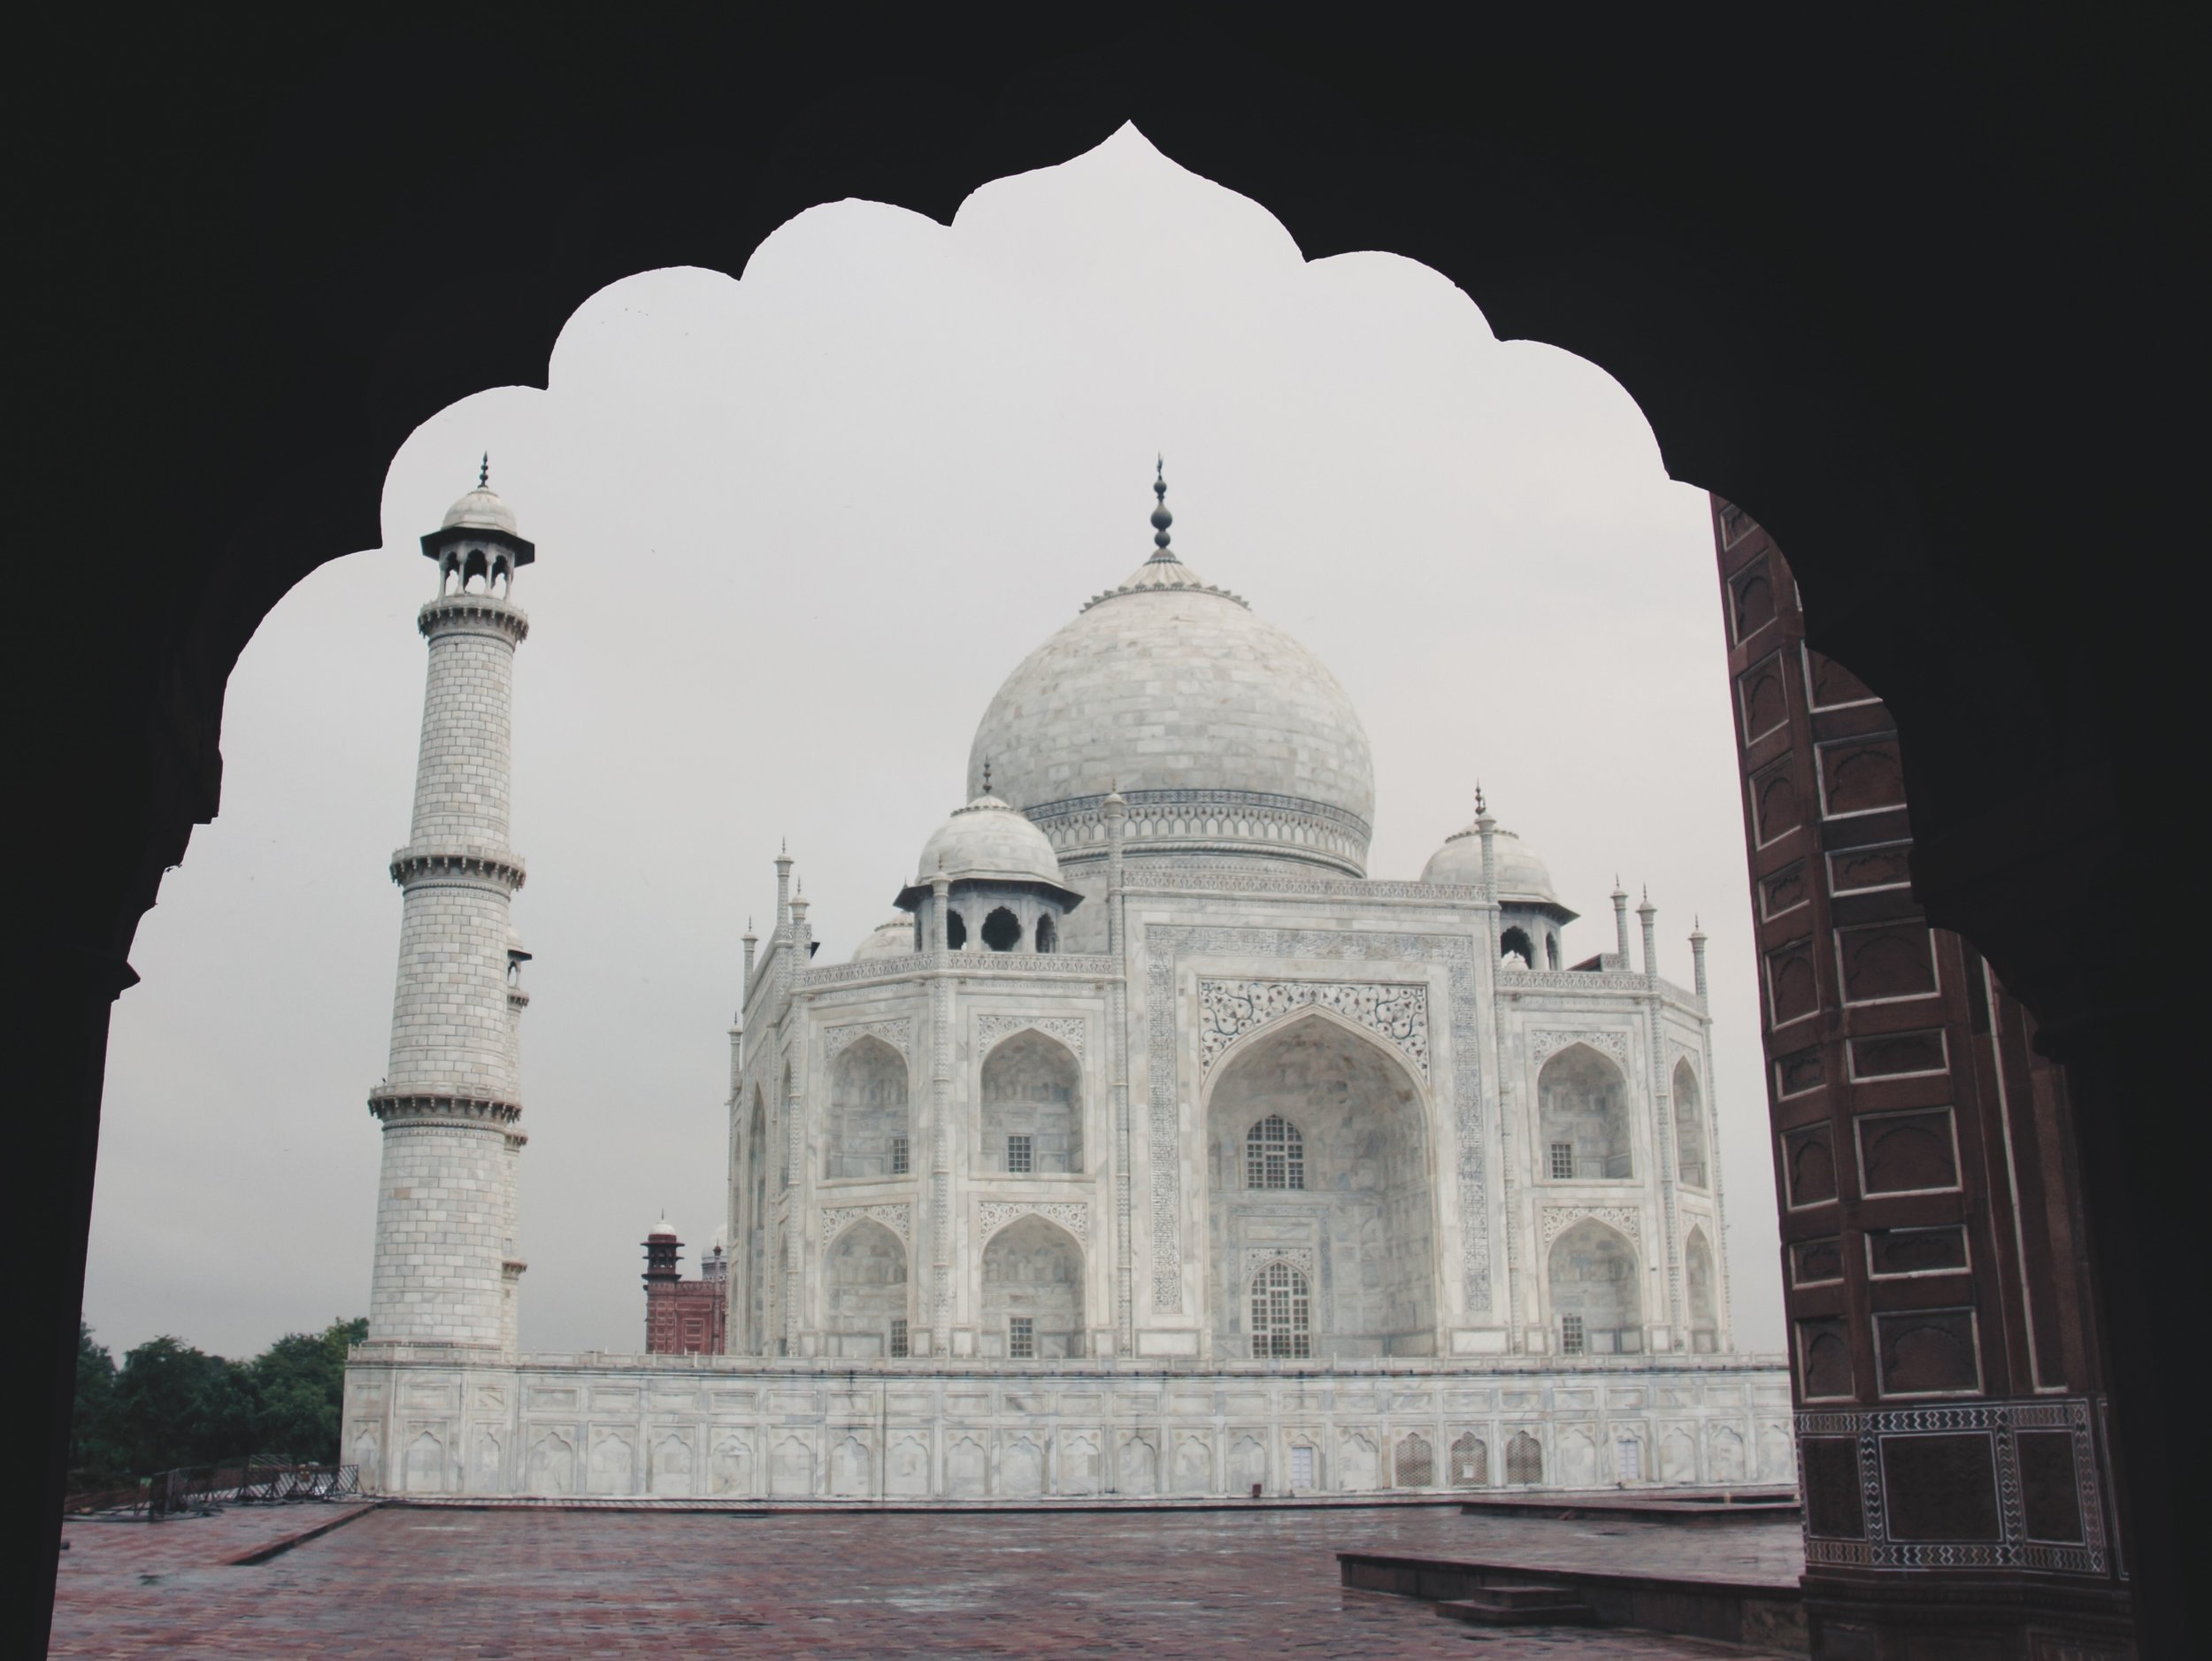 One final view of the Taj Mahal beautifully framed through the arch of a neighbouring building.